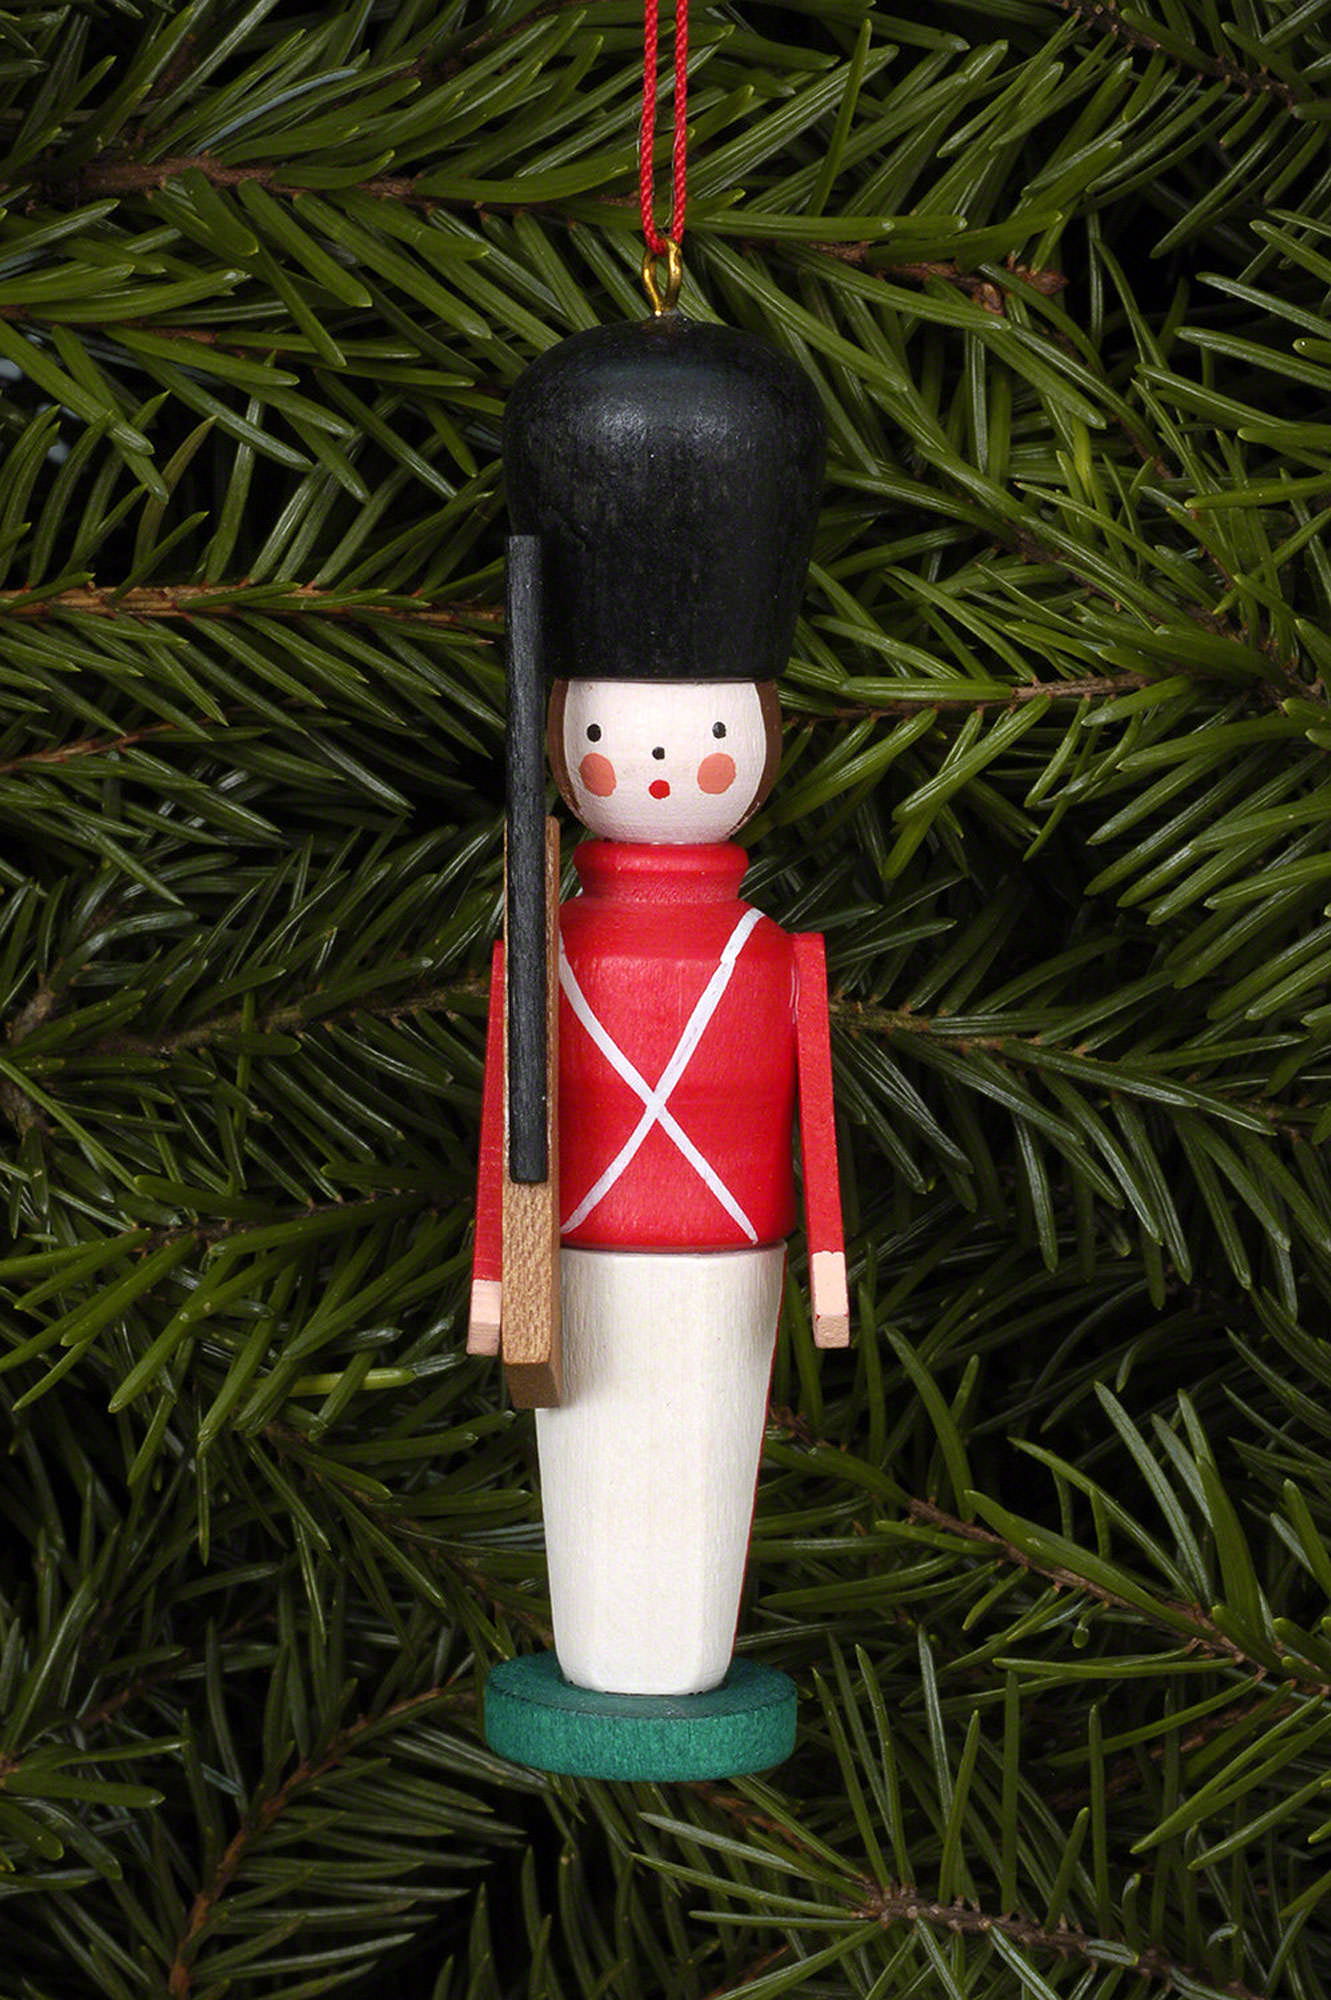 tree ornament toy soldier 2485 cm13in by christian ulbricht - Toy Soldier Christmas Decoration